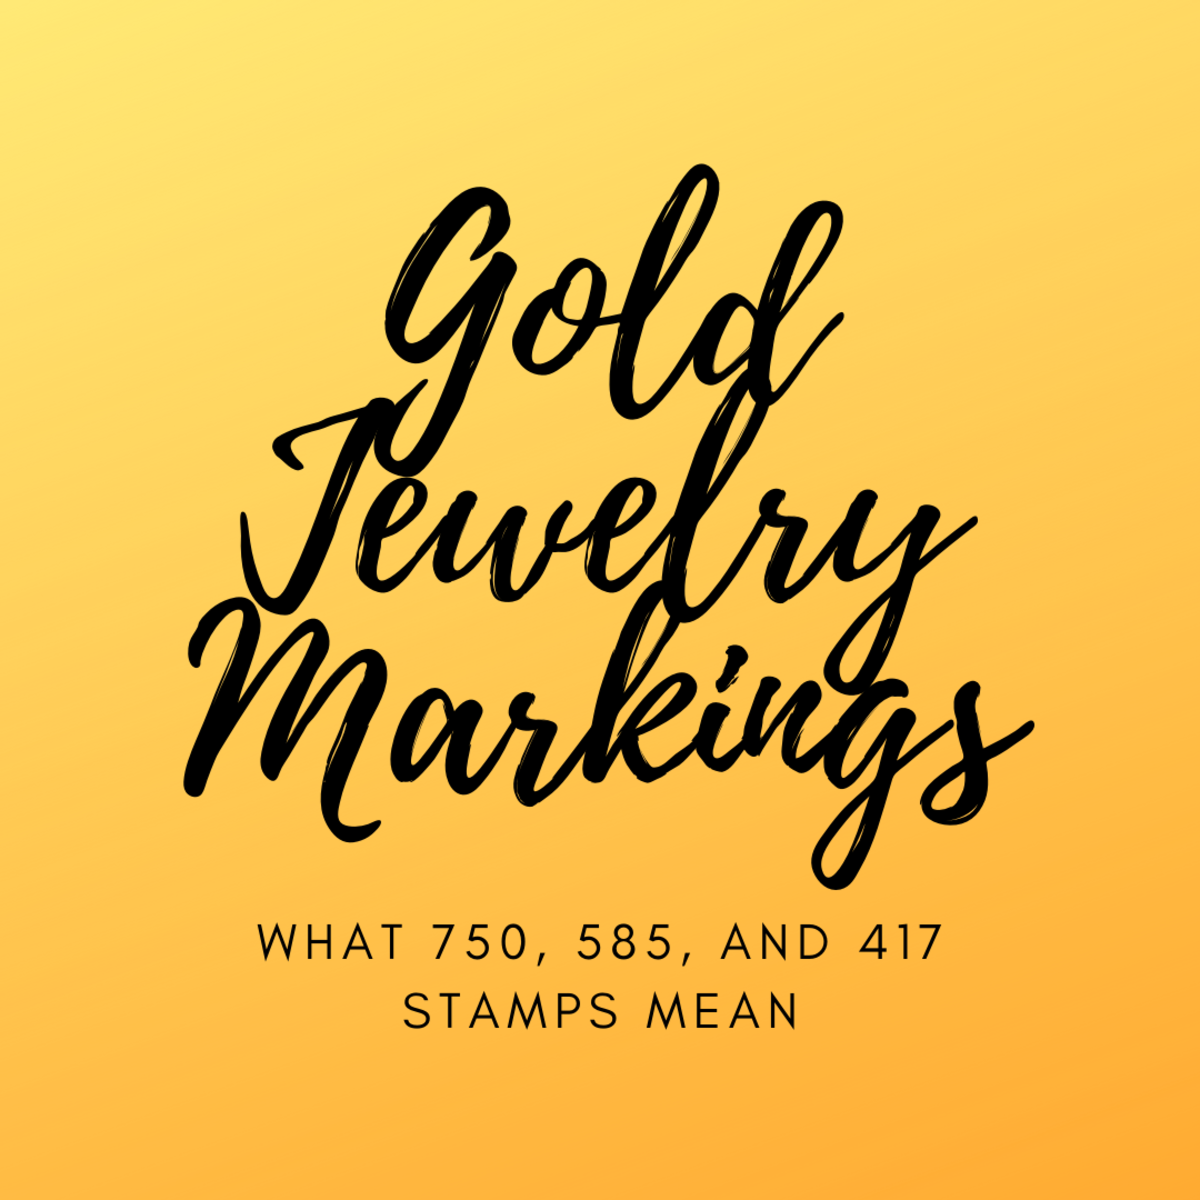 What do these gold jewelry markings mean?